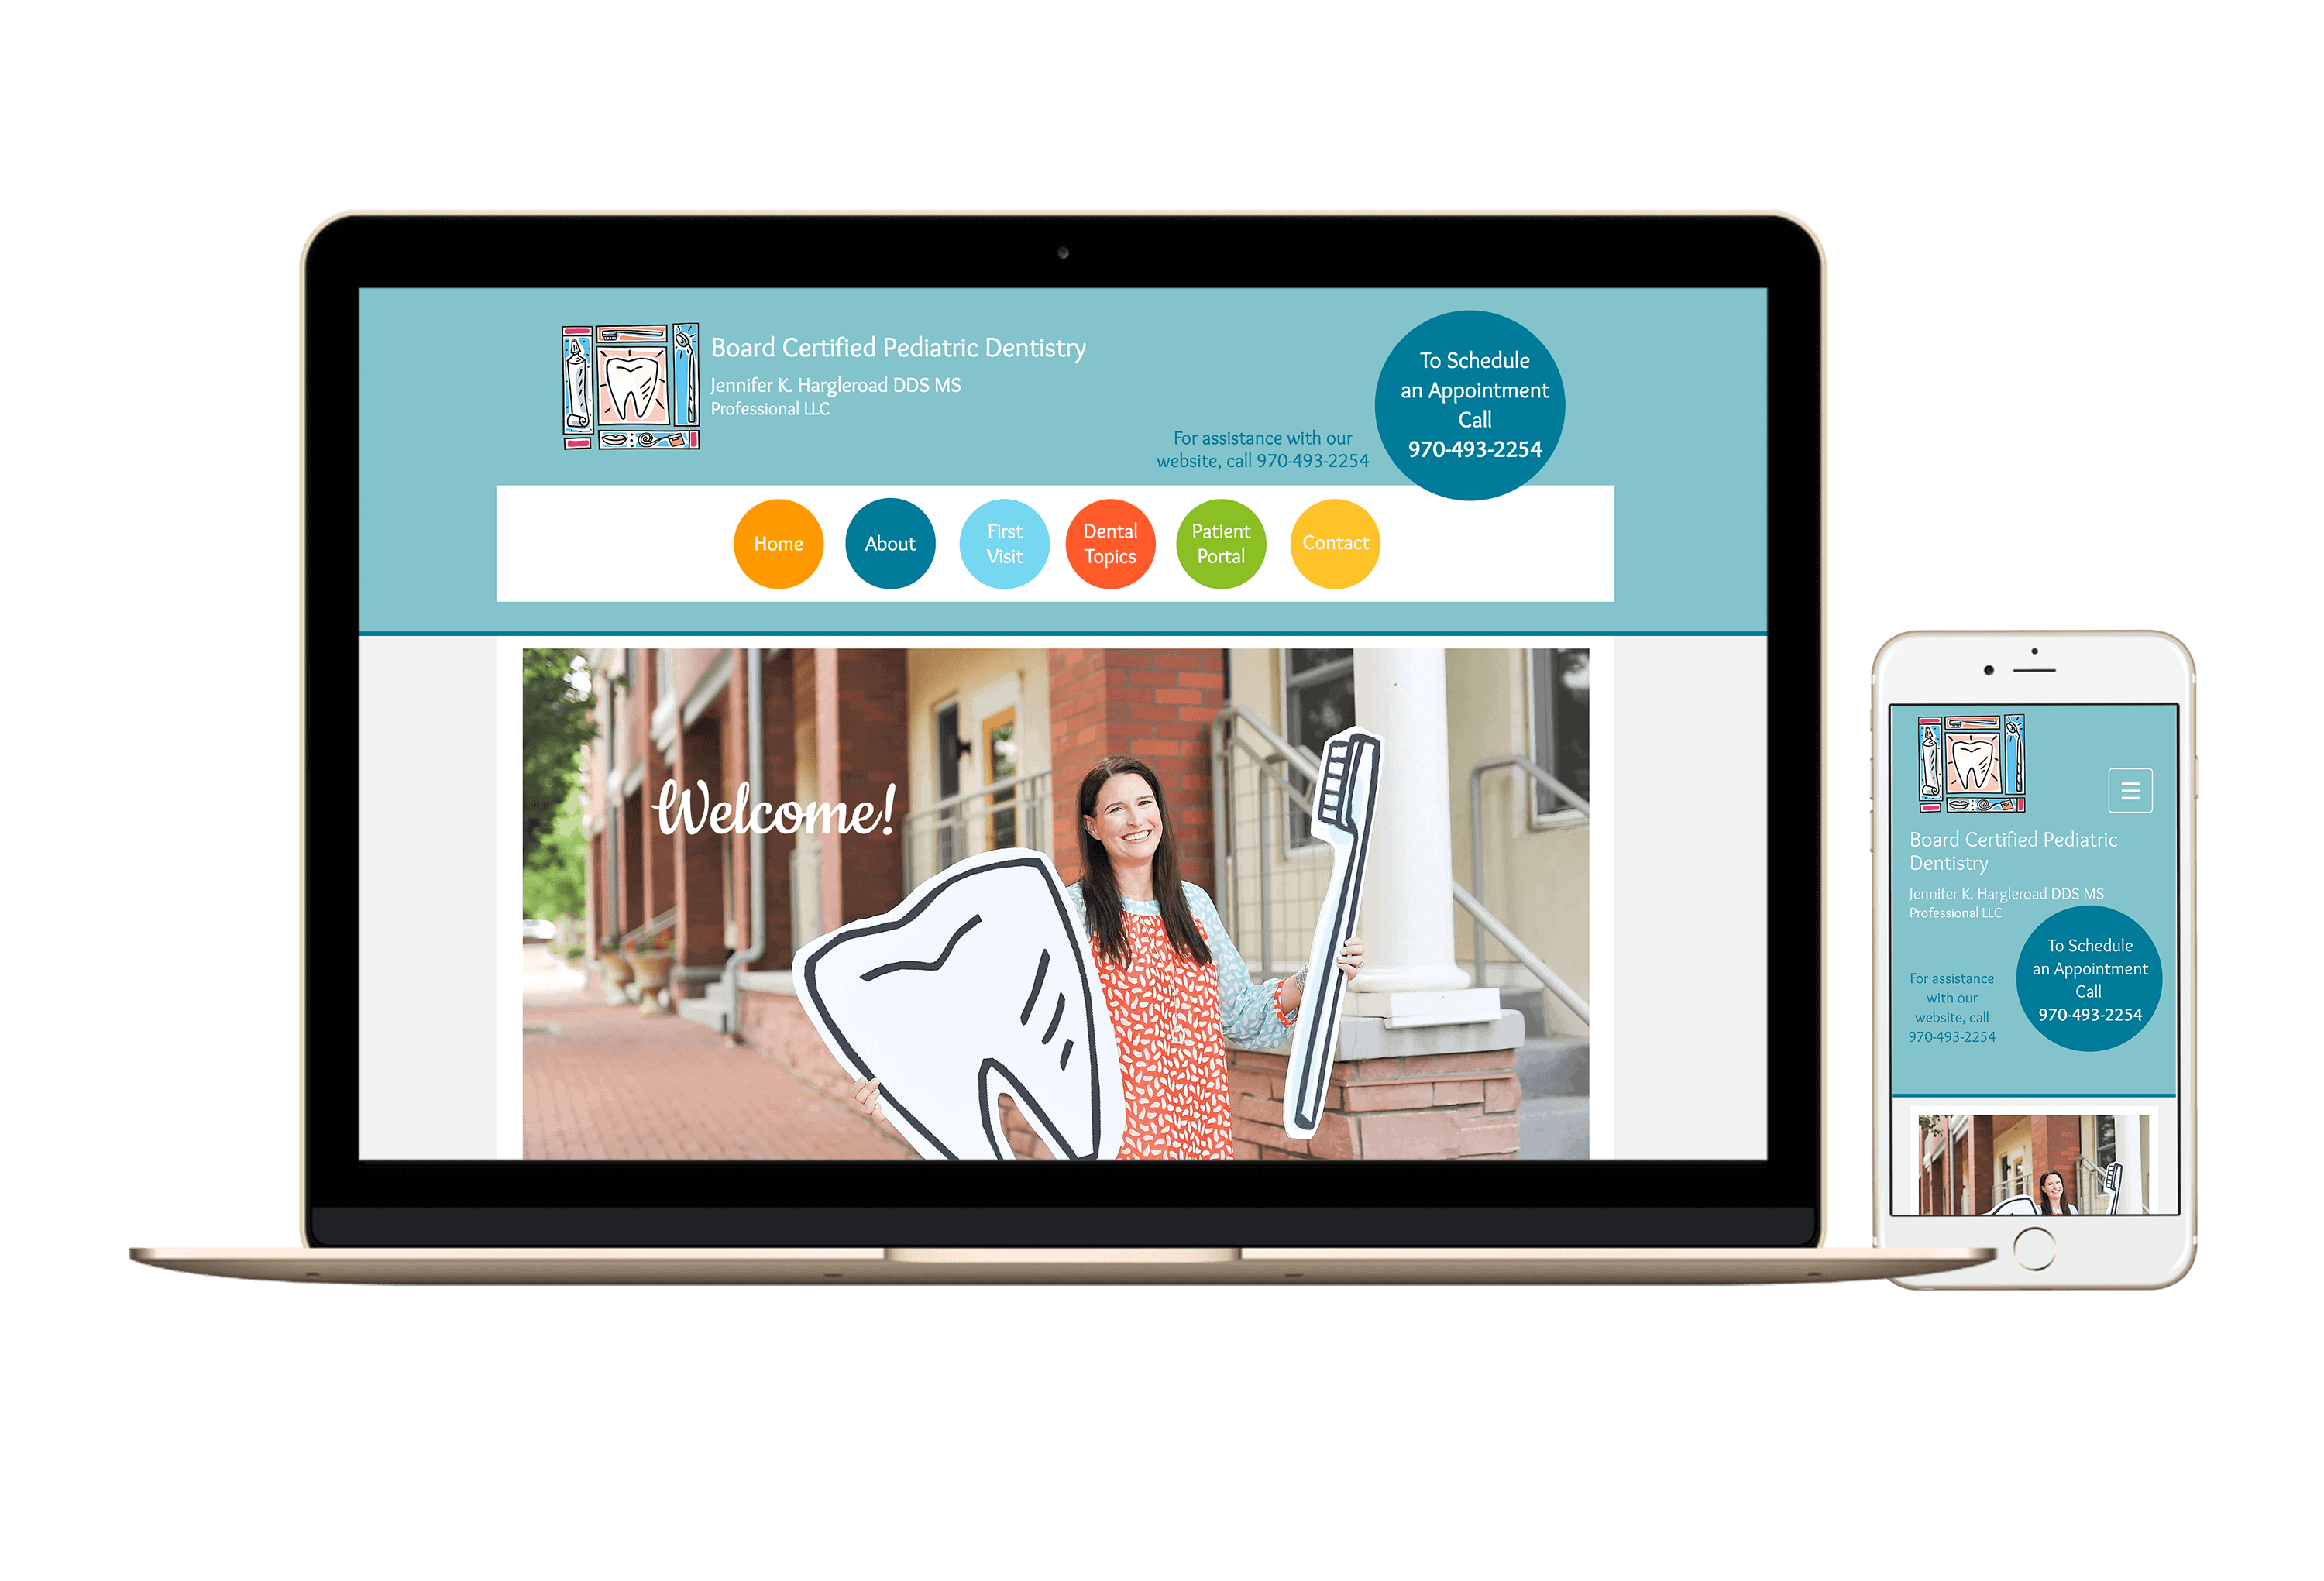 desktop and mobile website mockup for Dr. Jennifer Hargleroad